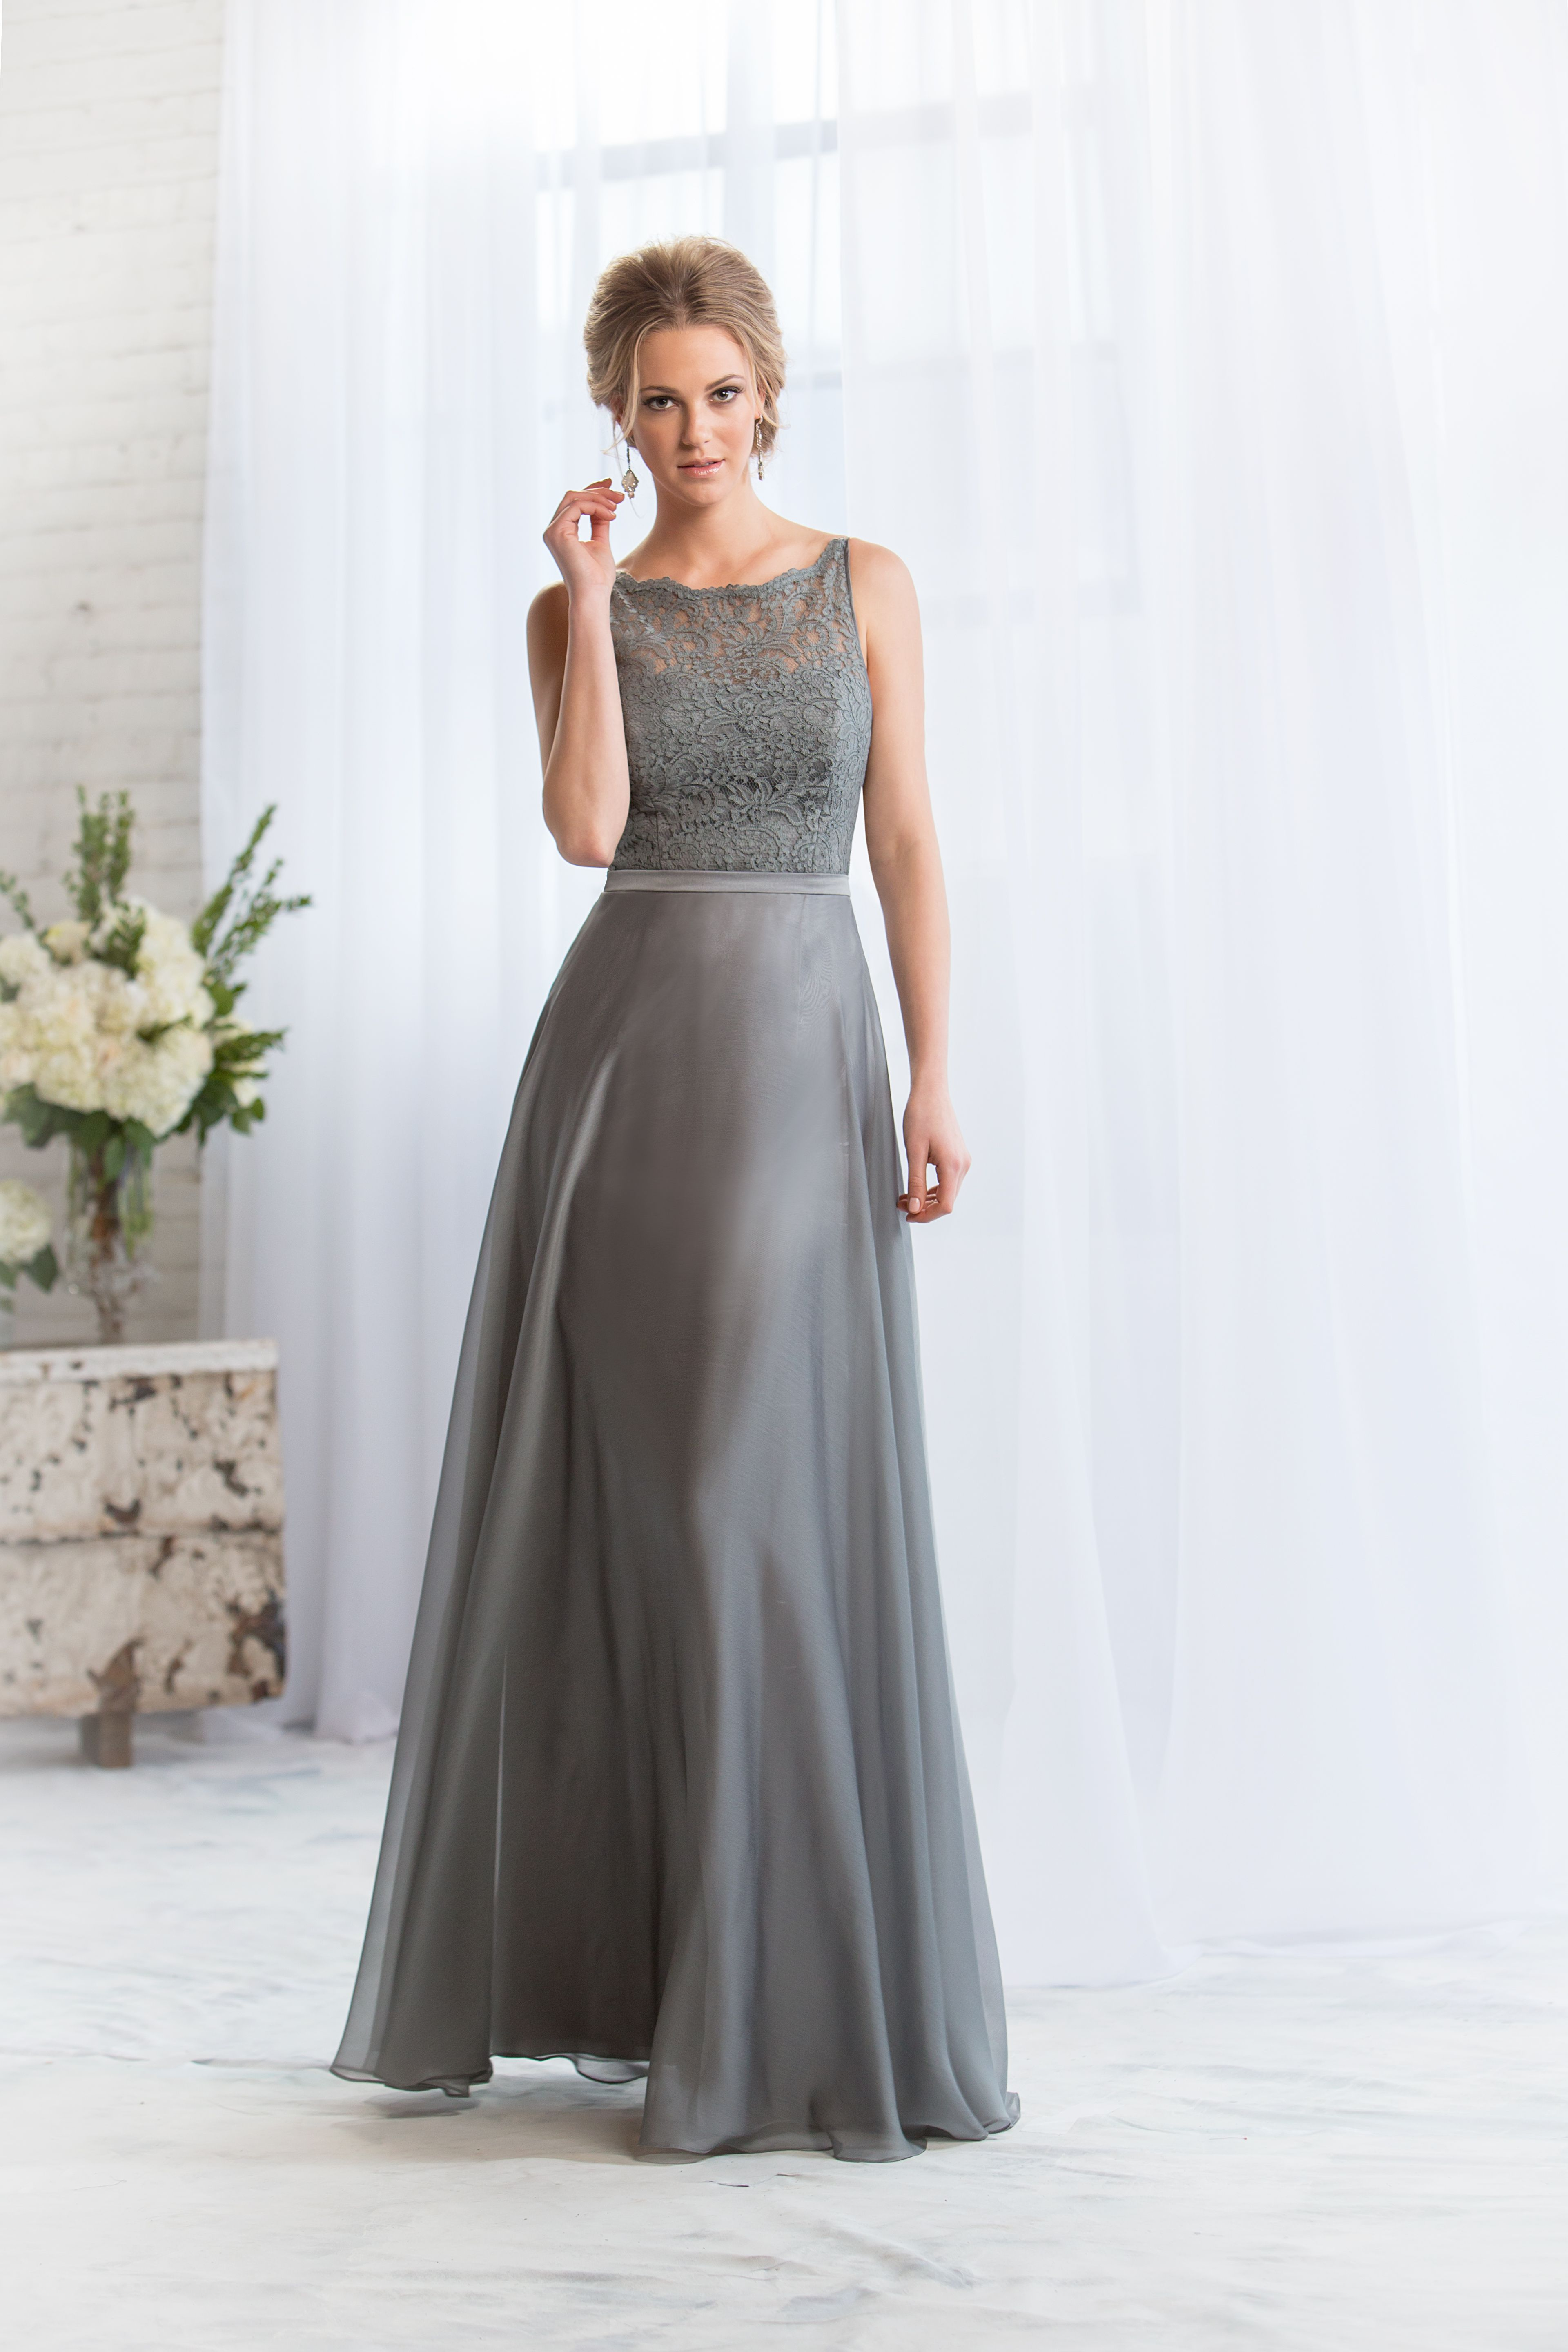 Bridesmaid dress is grey with lace top and chiffon skirt bridesmaid dress is grey with lace top and chiffon skirt available in a full range ombrellifo Gallery